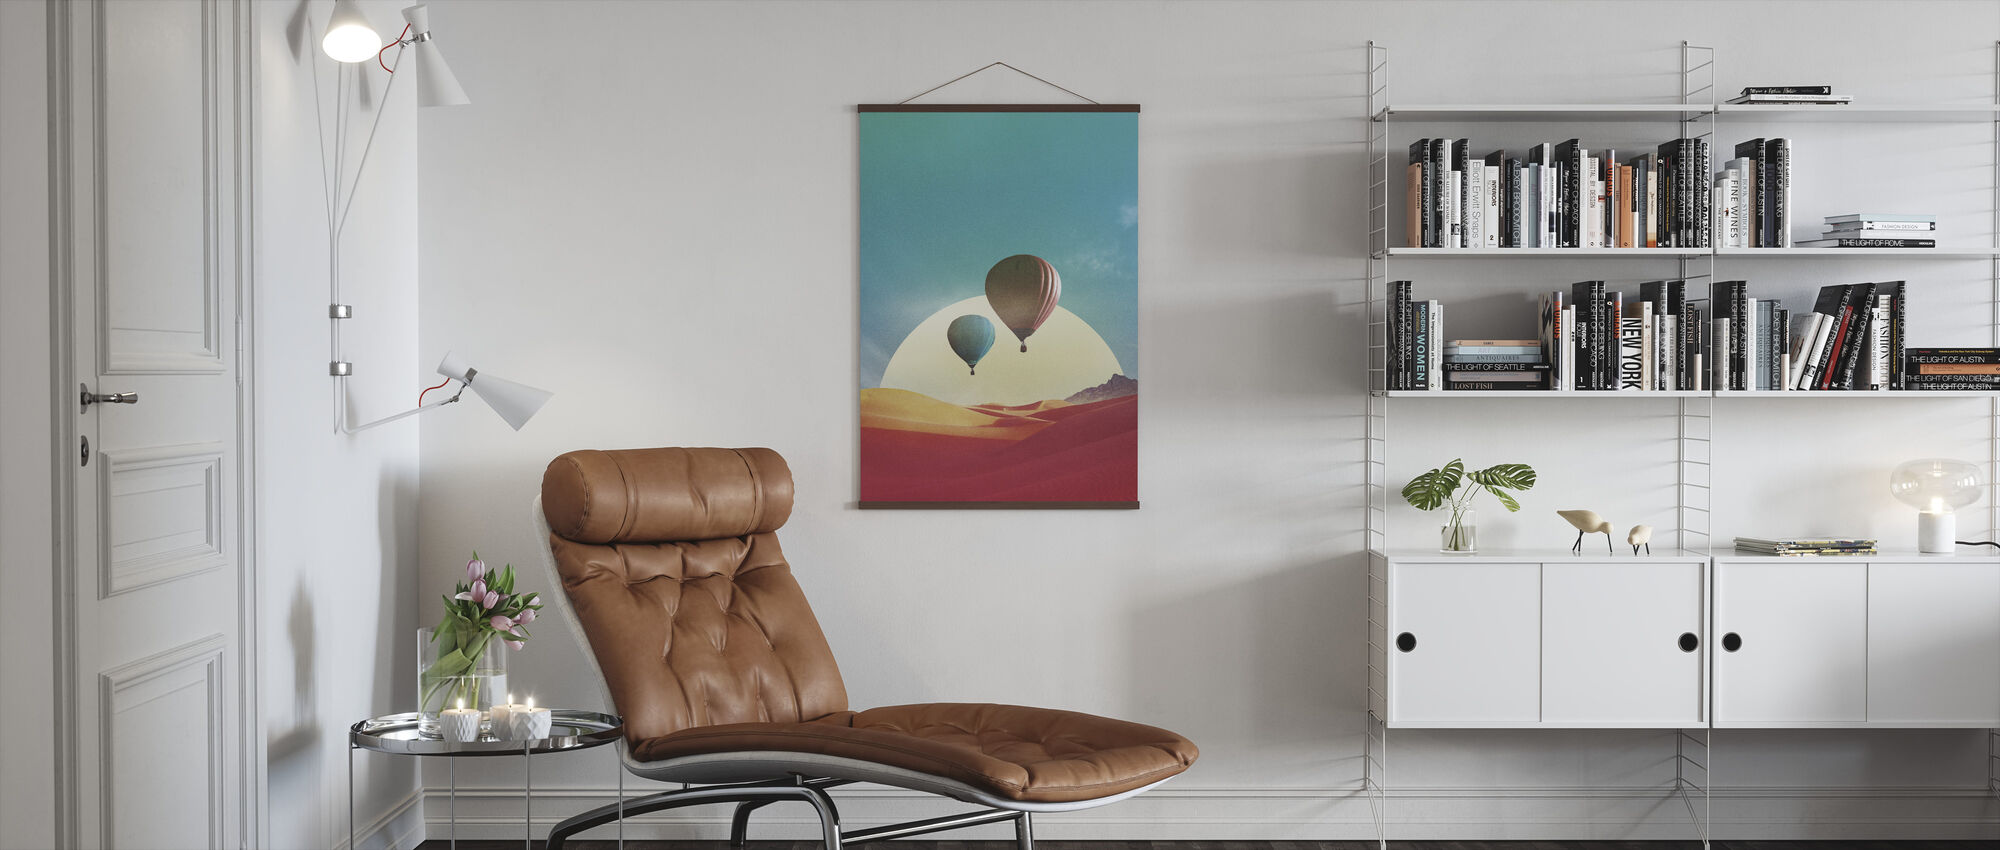 Stereolab - Poster - Living Room